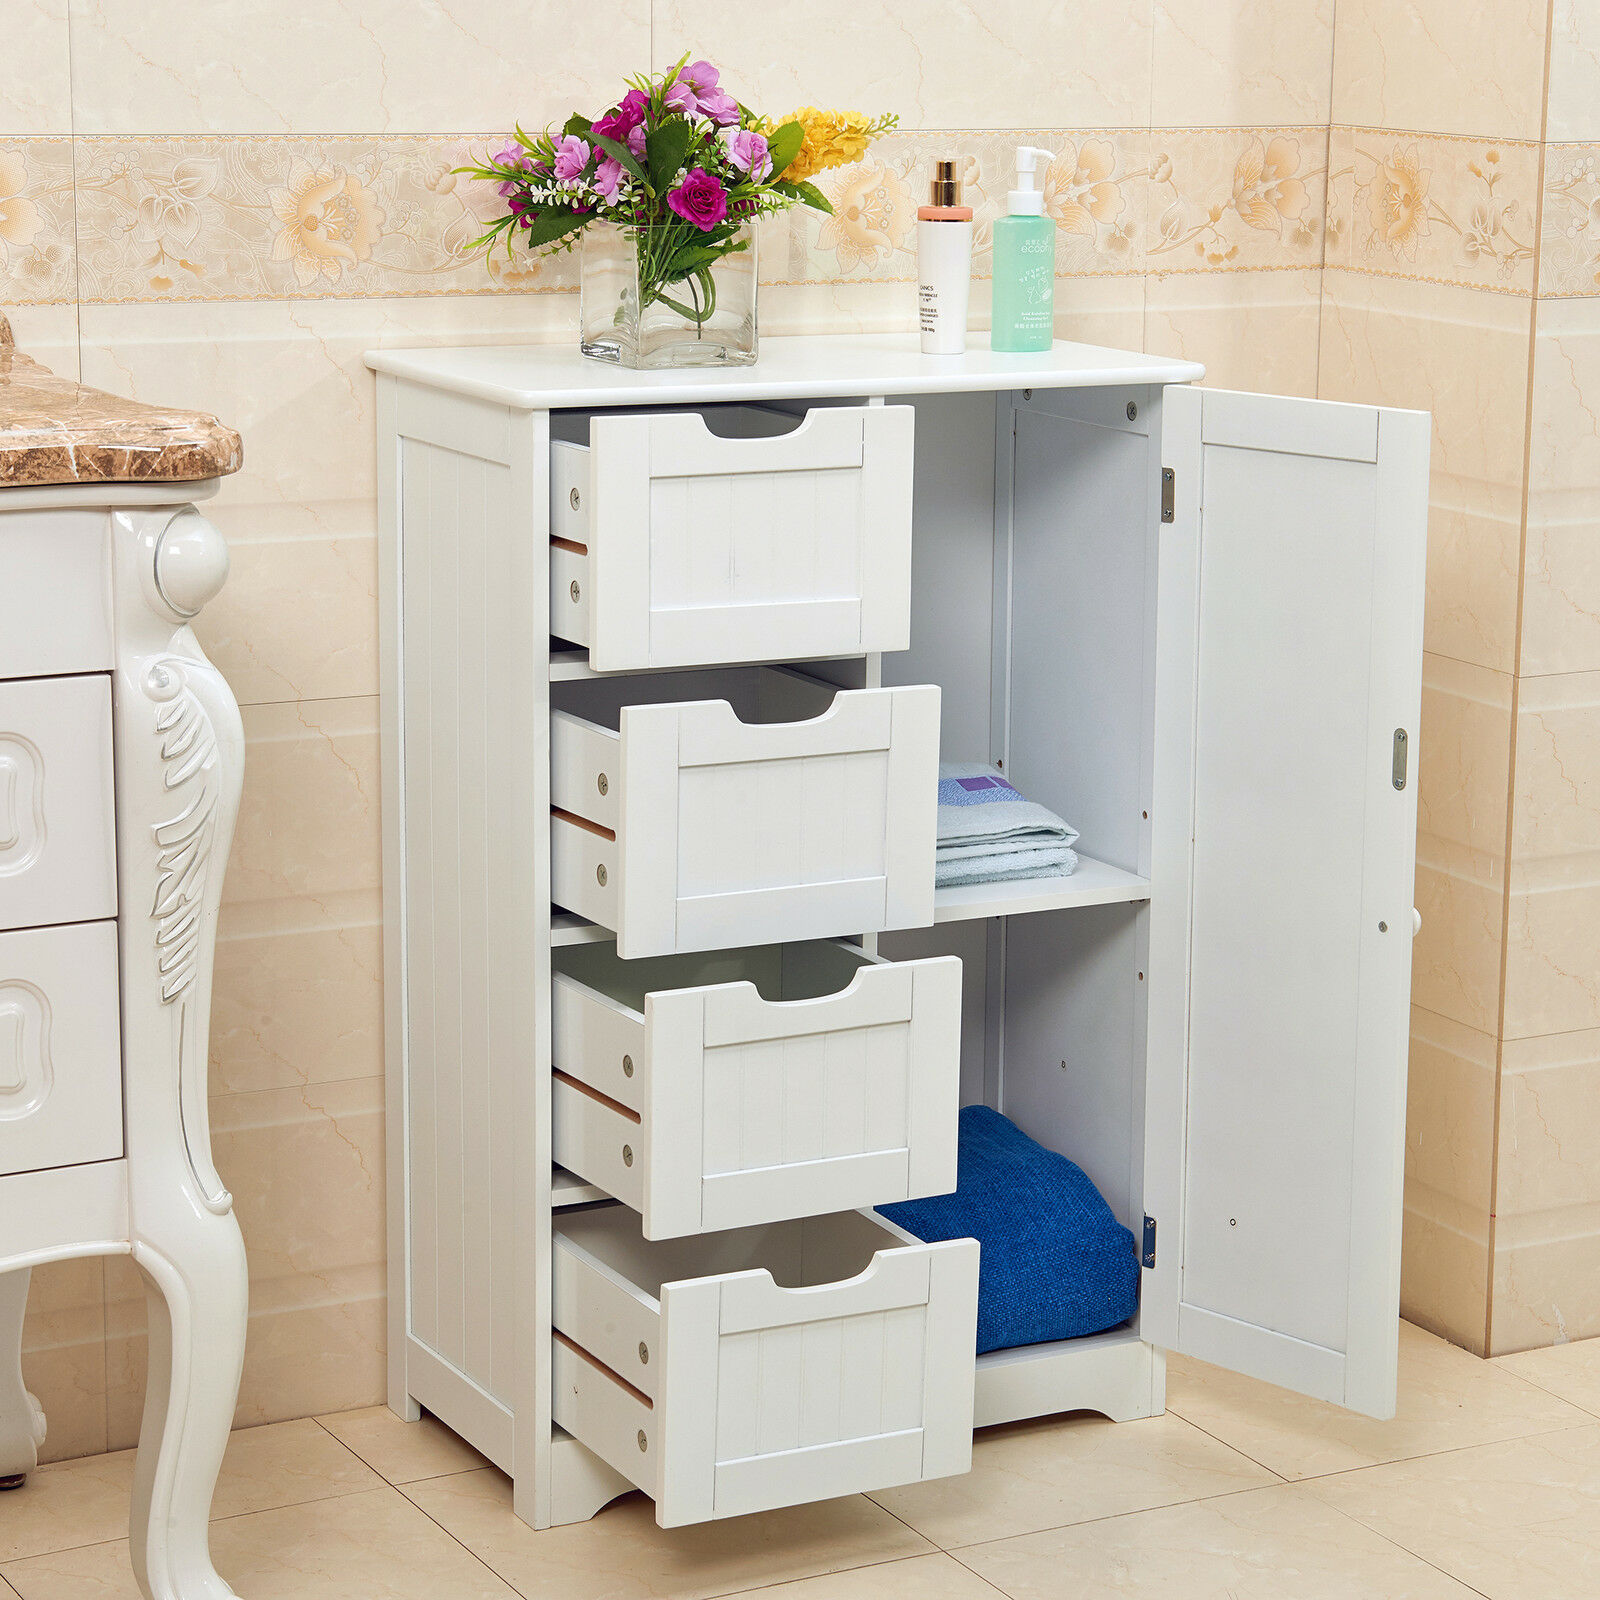 White wooden 4 drawer bathroom storage cupboard cabinet for Bathroom cabinets ebay australia